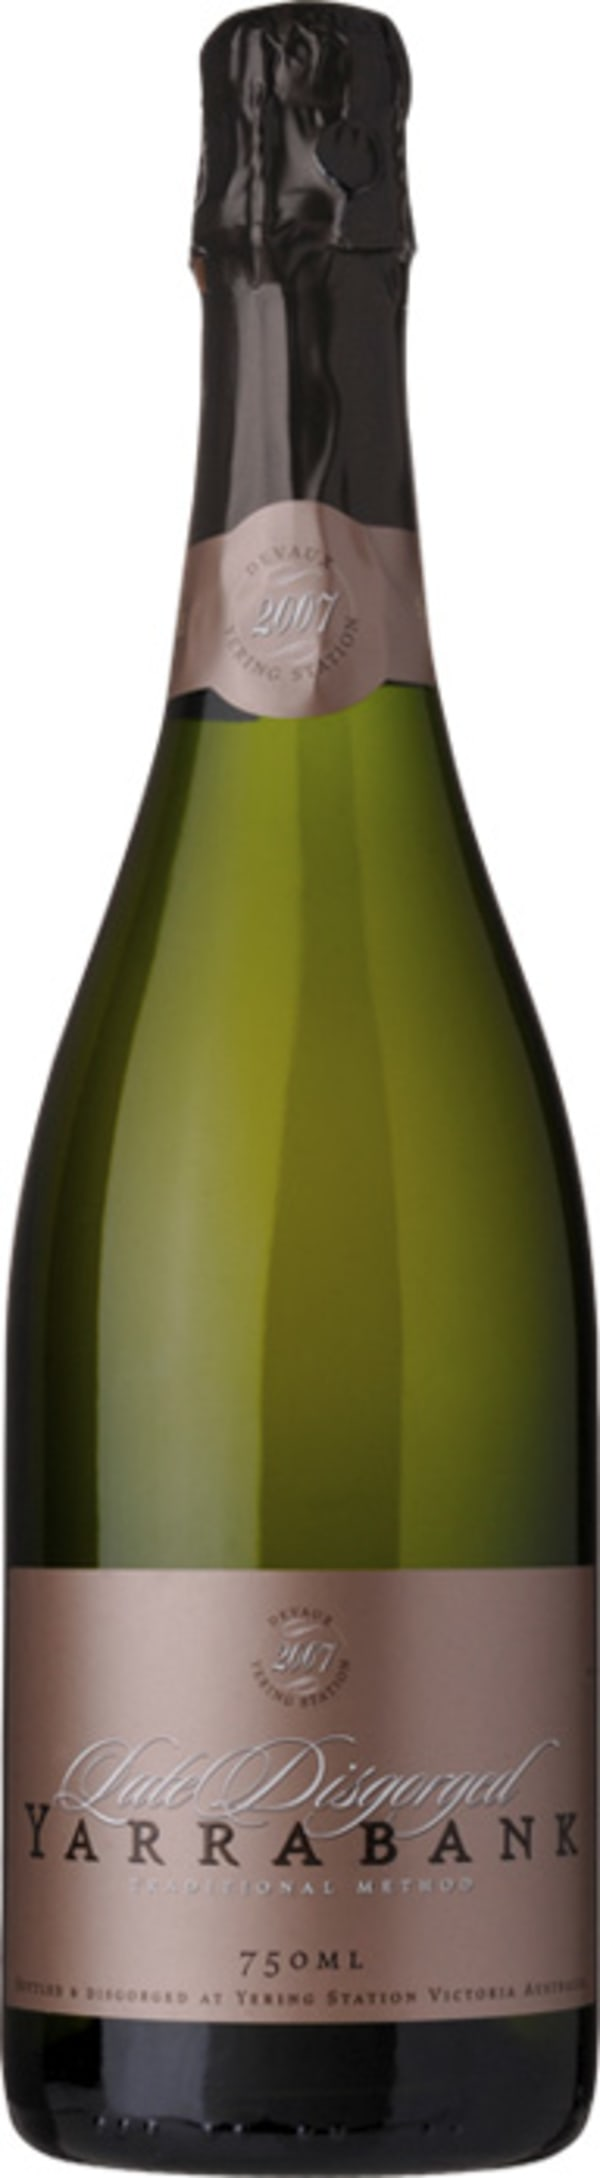 Yarrabank Late Disgorged Brut Nature 2007